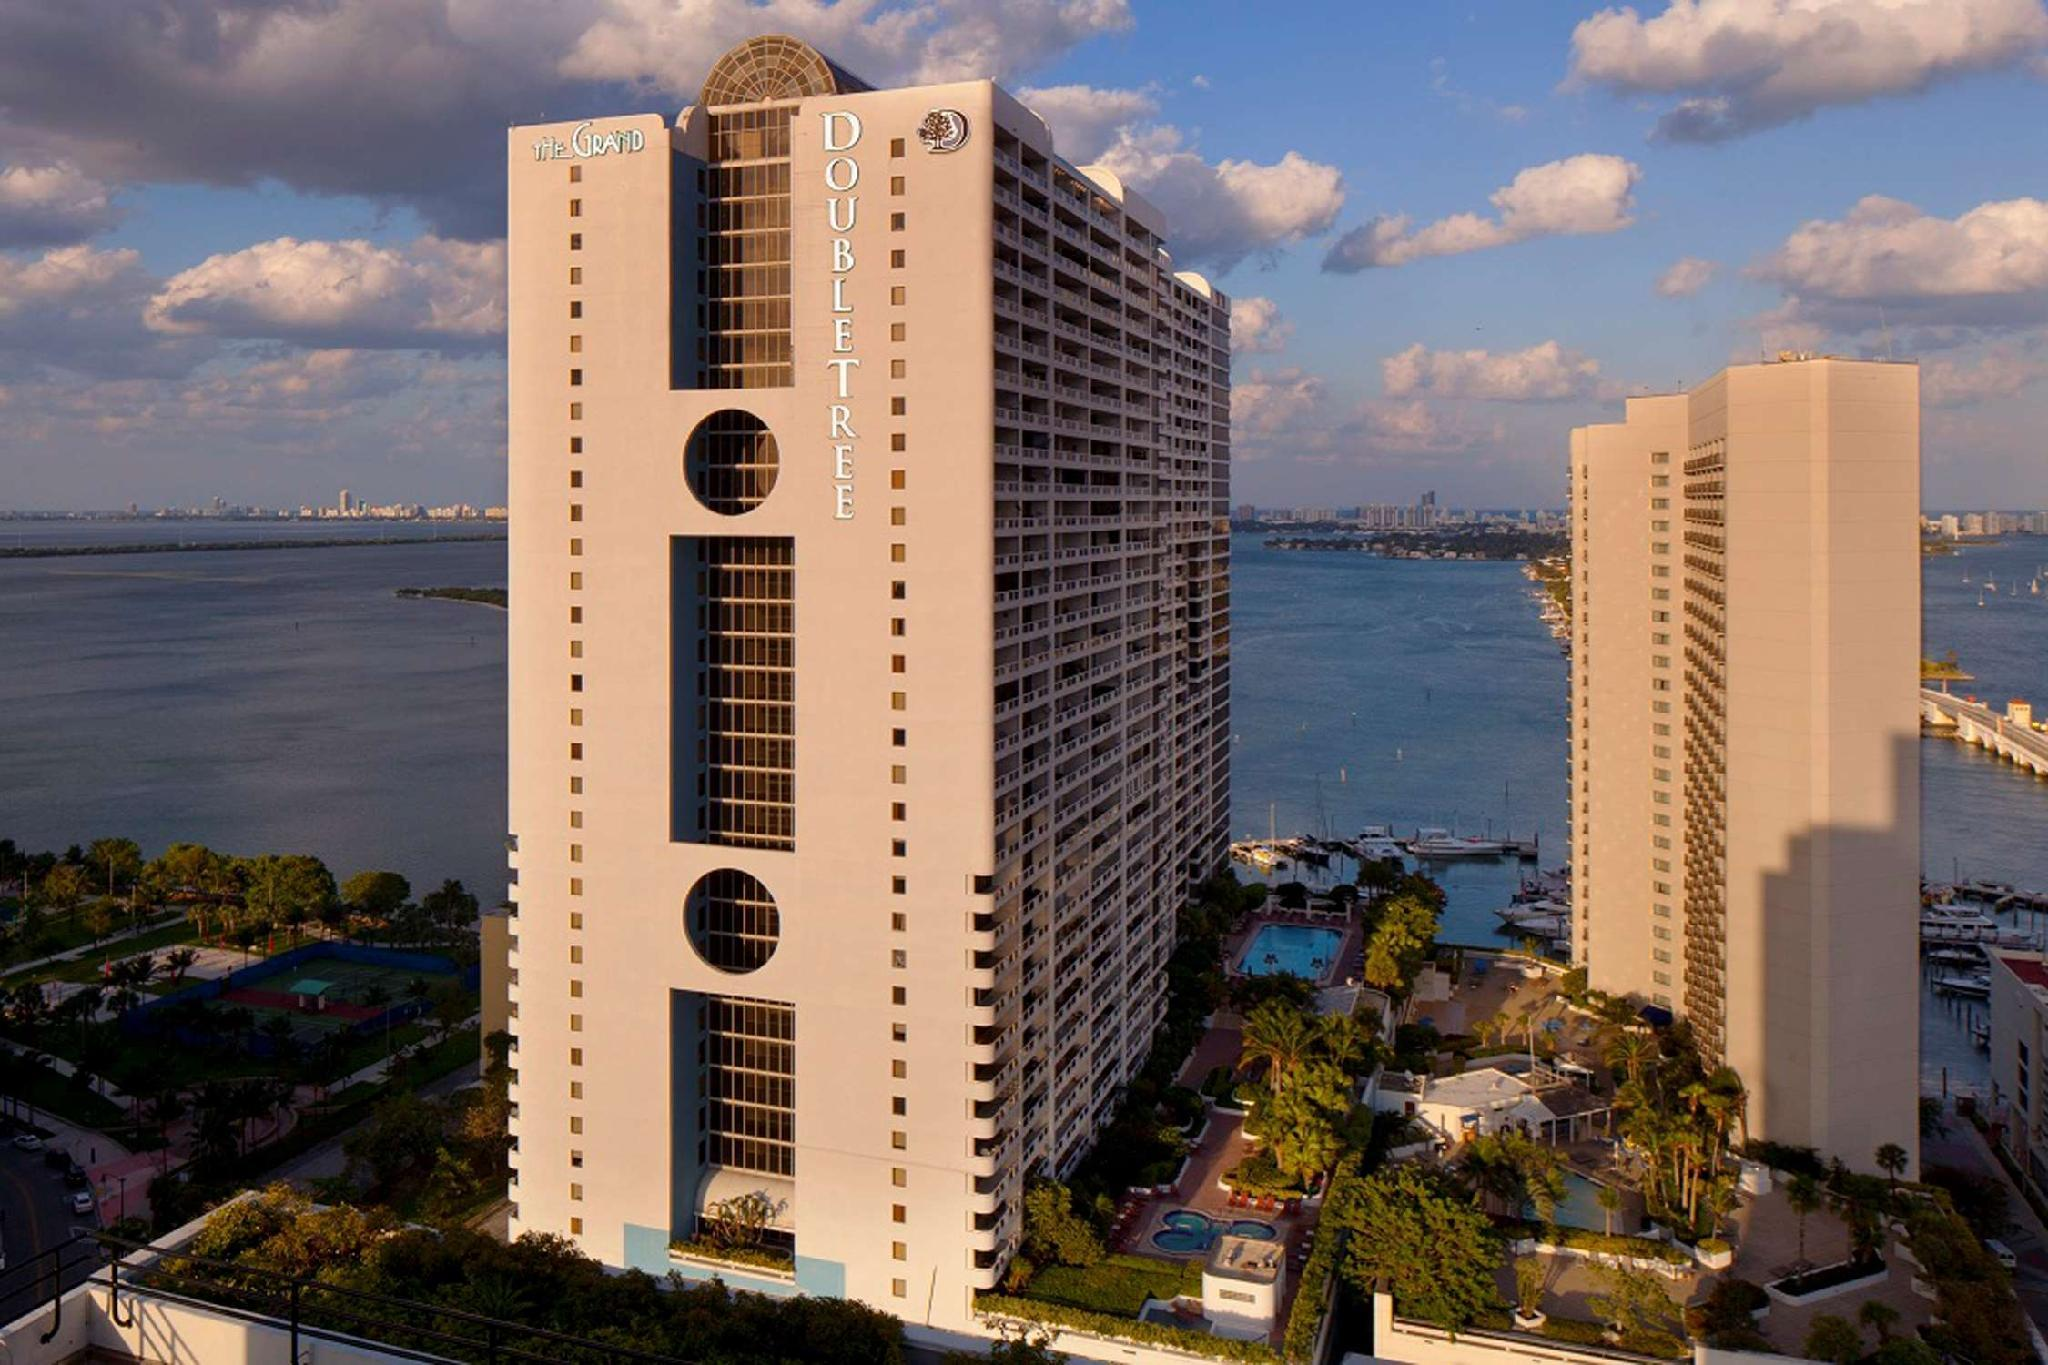 Doubletree Grand Hotel Biscayne Bay Miami